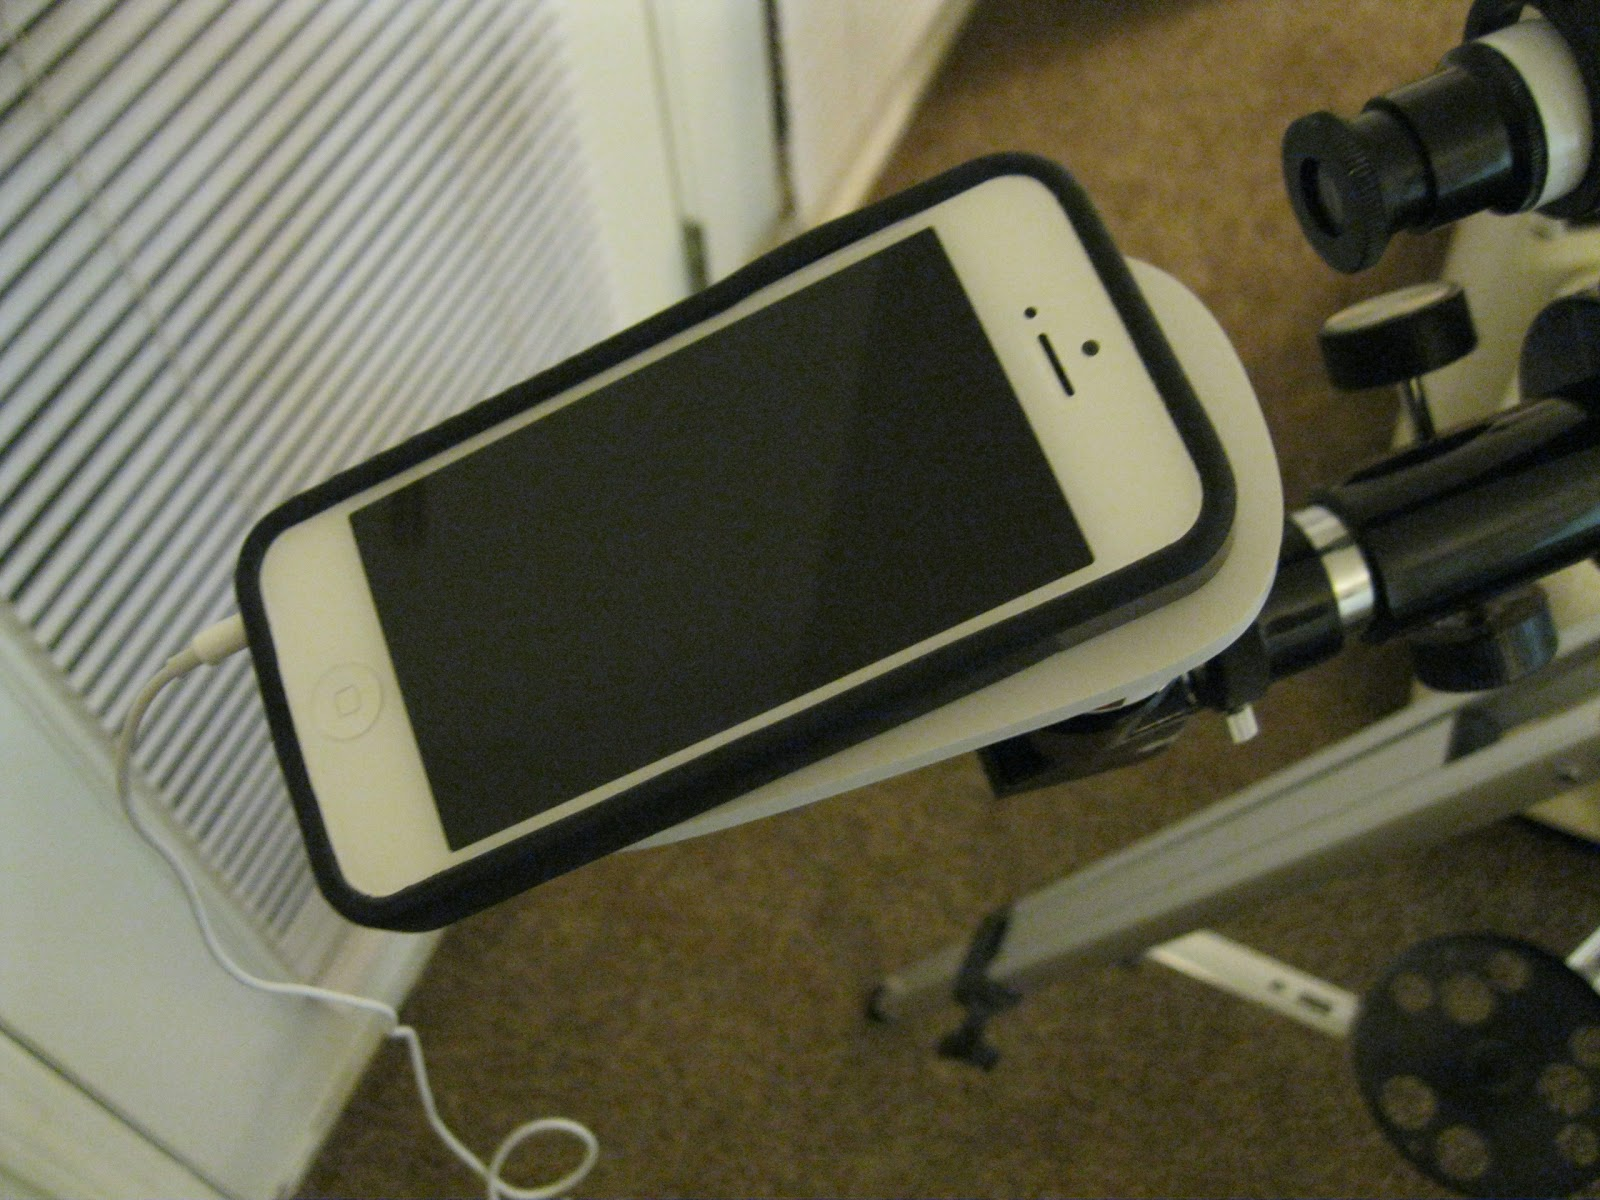 Diy Homemade Iphone Telescope Attachment Adapter Mount Stellar